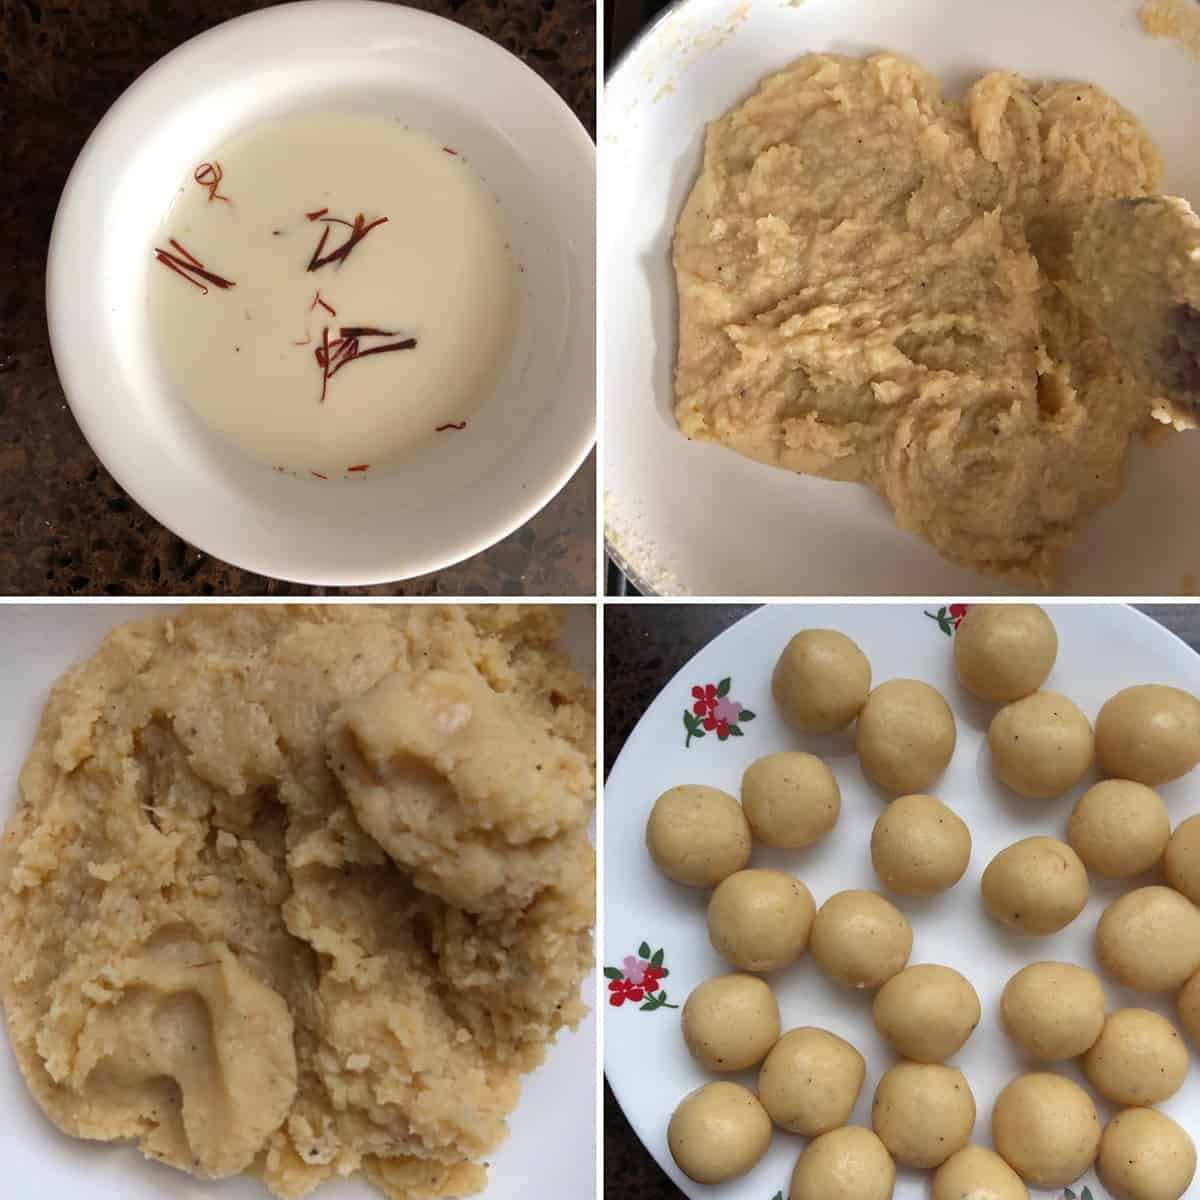 Photos showing the making of coconut malai ladoo